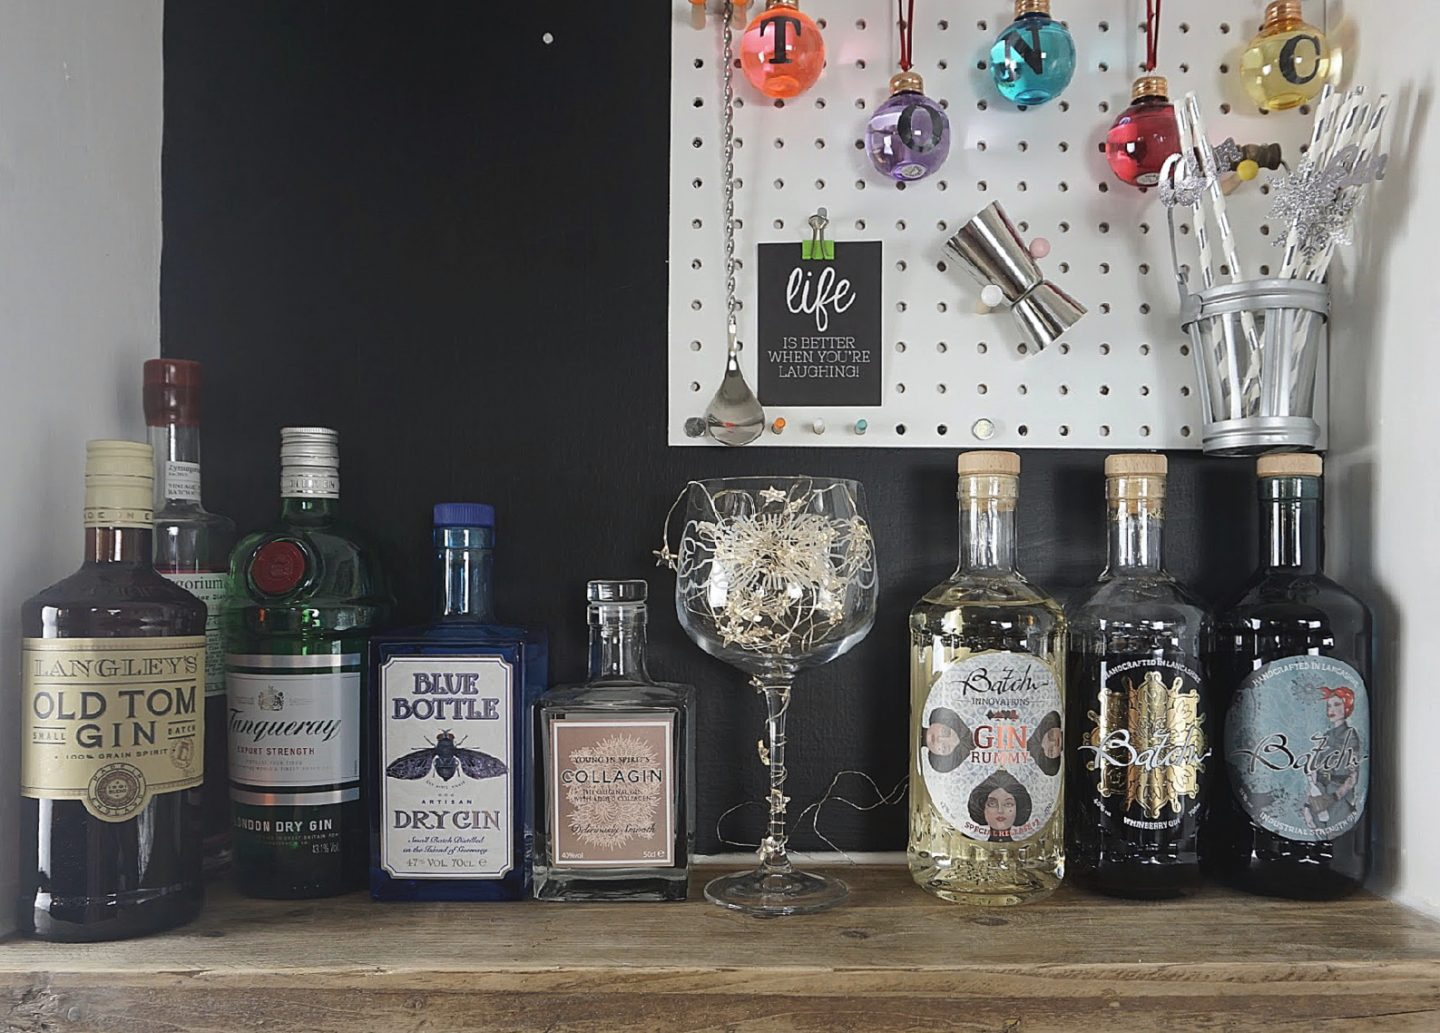 Best Gins for Christmas Gin Bar